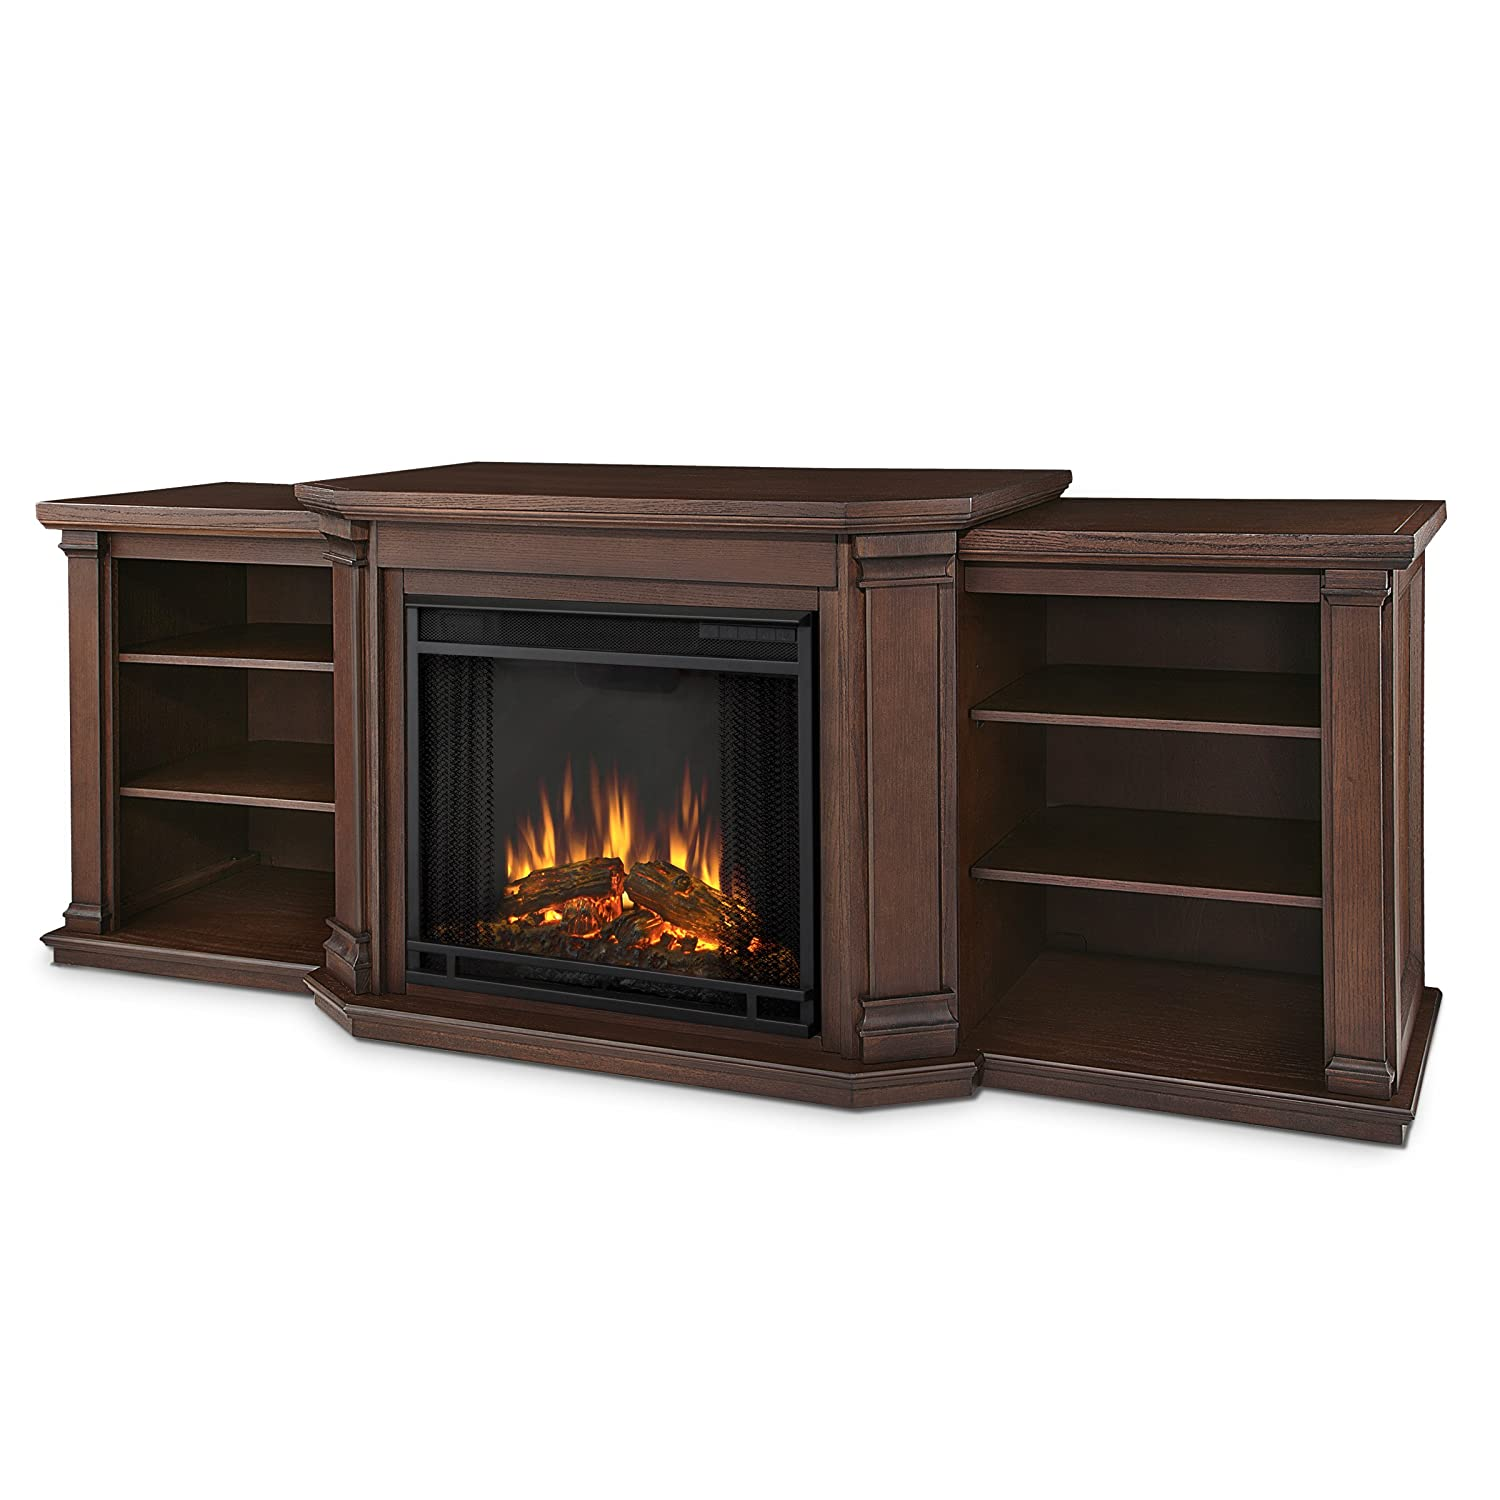 Real Flame Valmont Entertainment Electric Fireplace in Chestnut Oak Finish